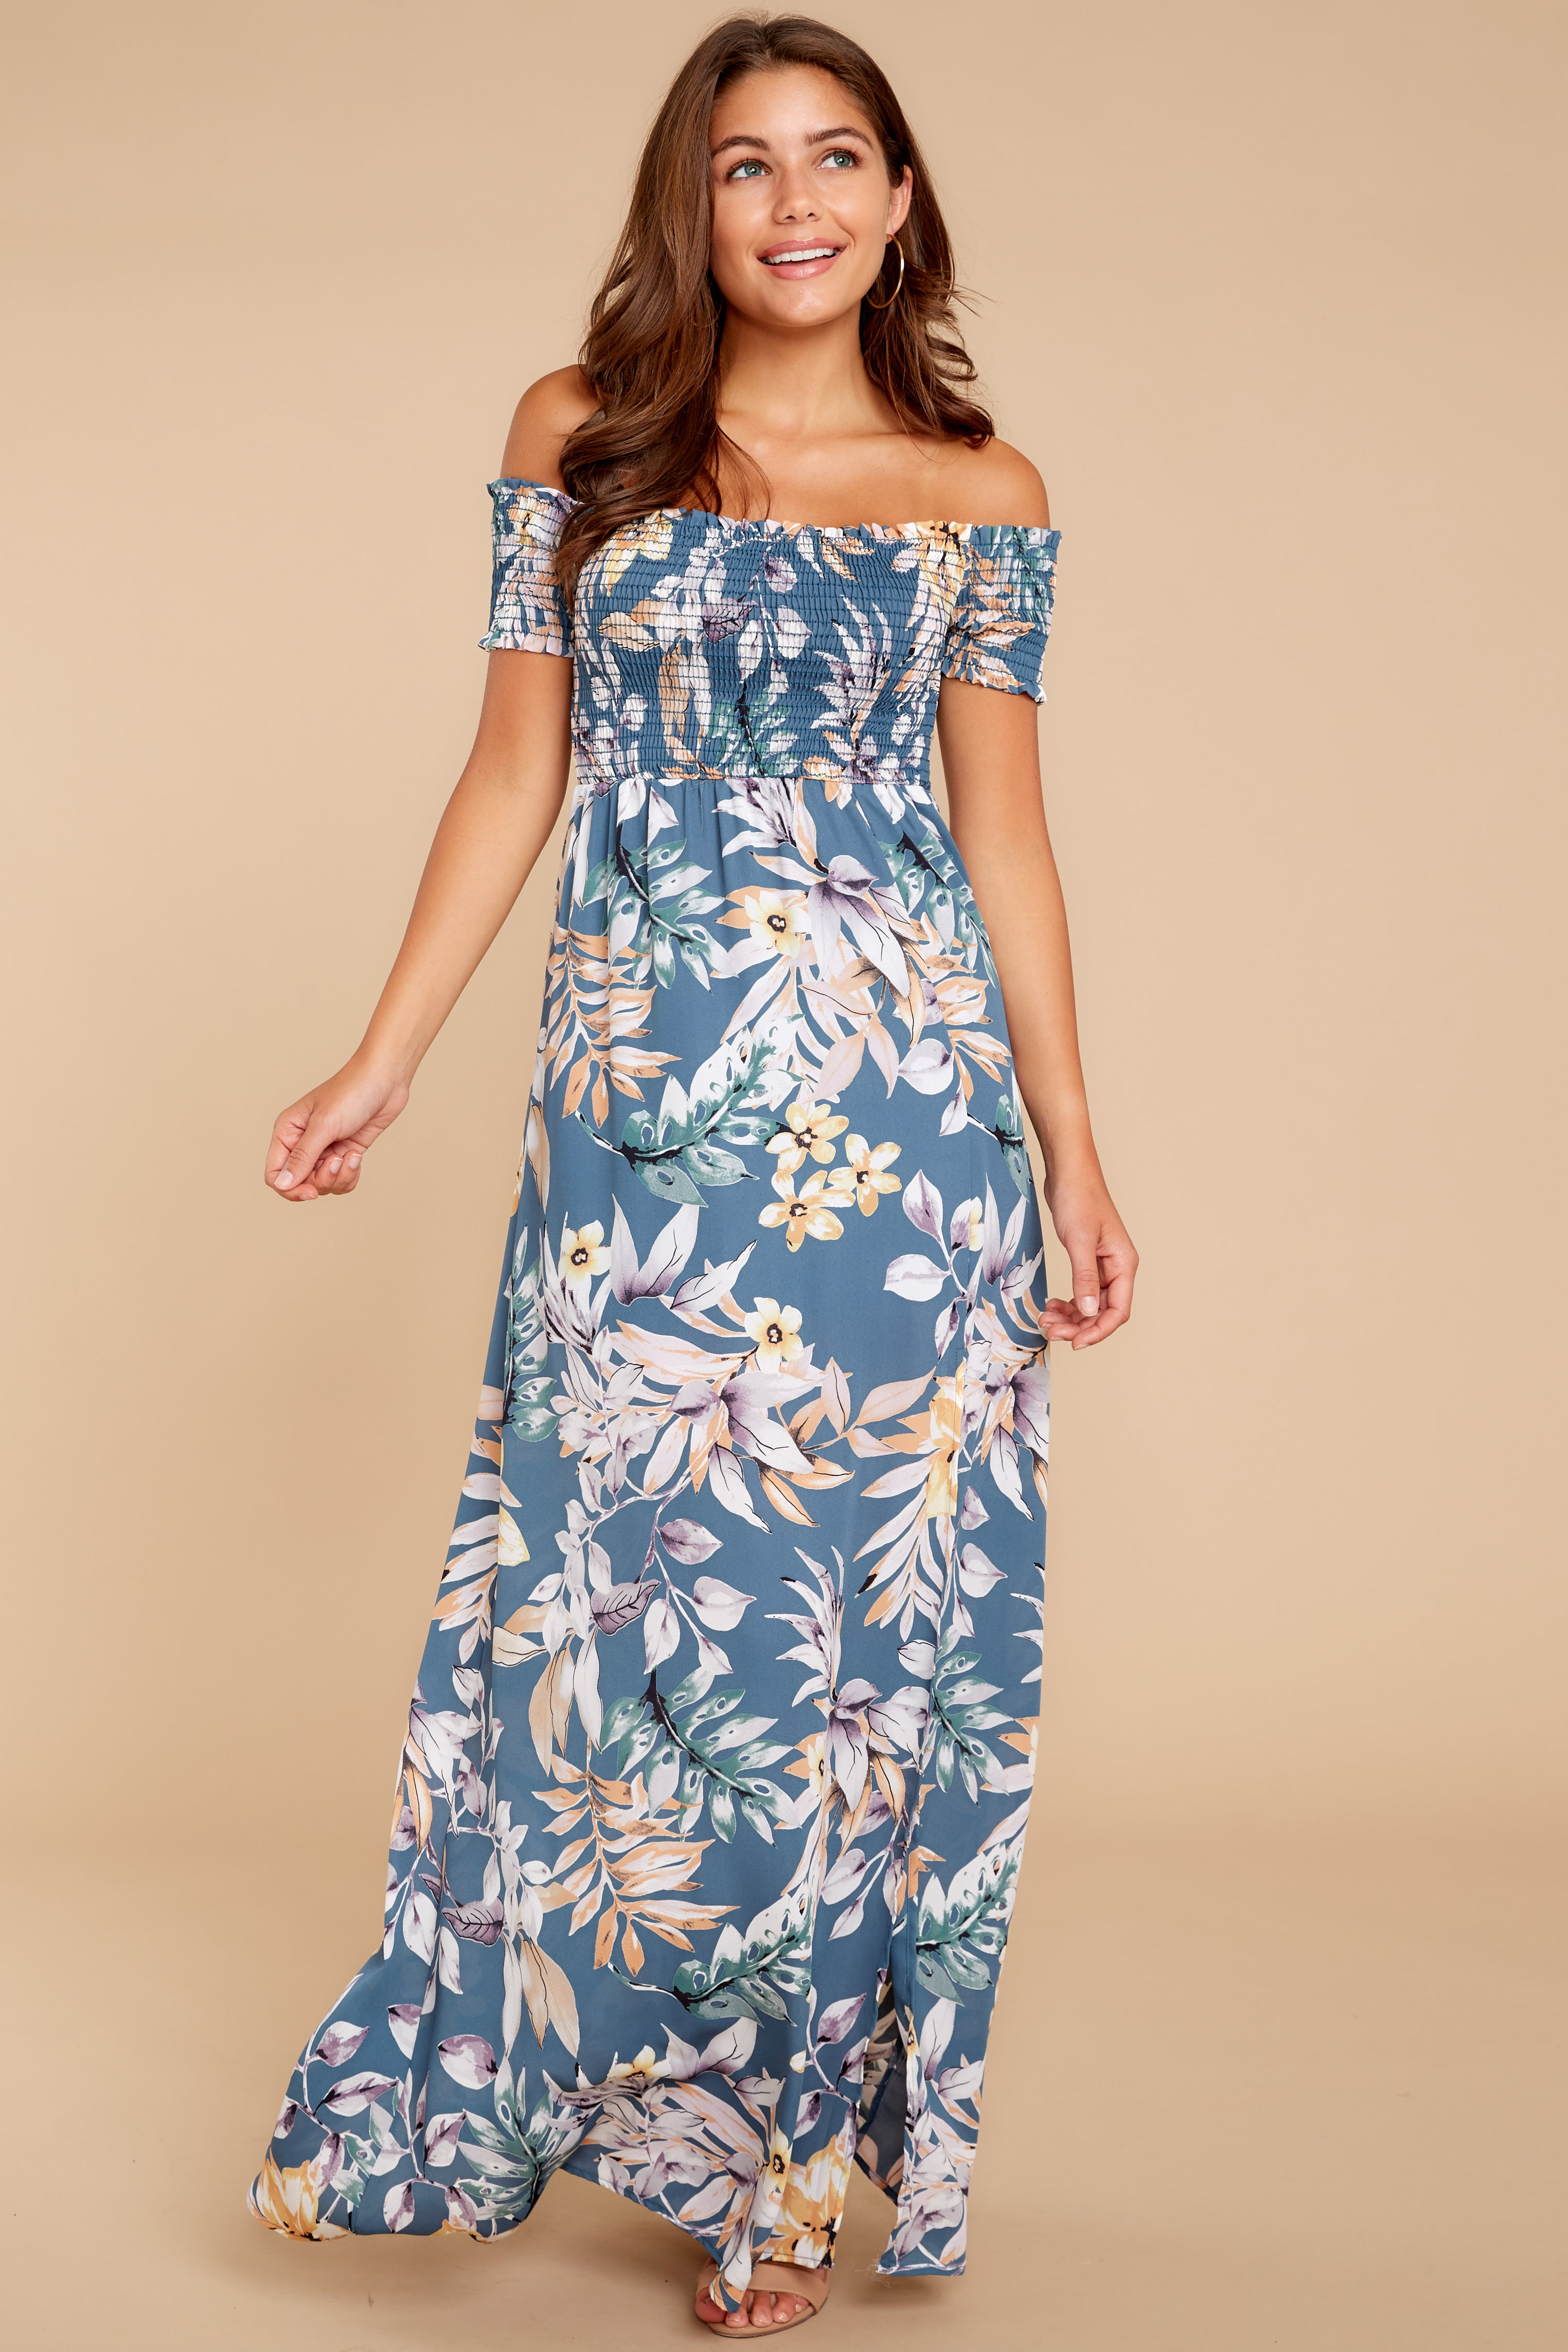 4 Chasing Memories Maxi Dress In Pacific Palm at reddressboutique.com